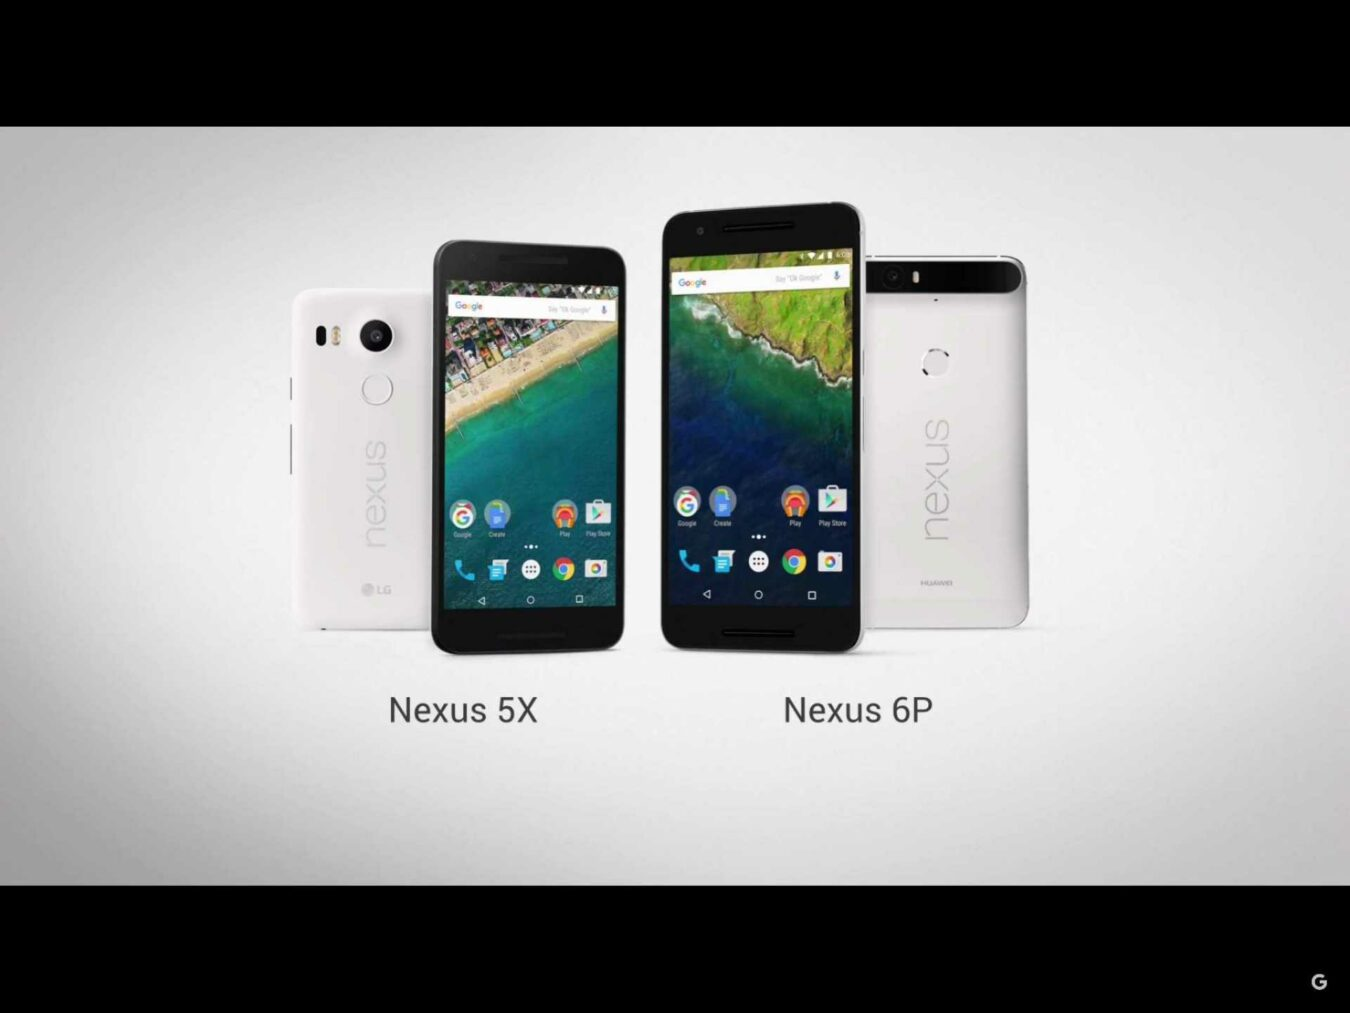 Photo of [NEWS] Refonte de la gamme Nexus avec le Nexus 5X et Nexus 6P